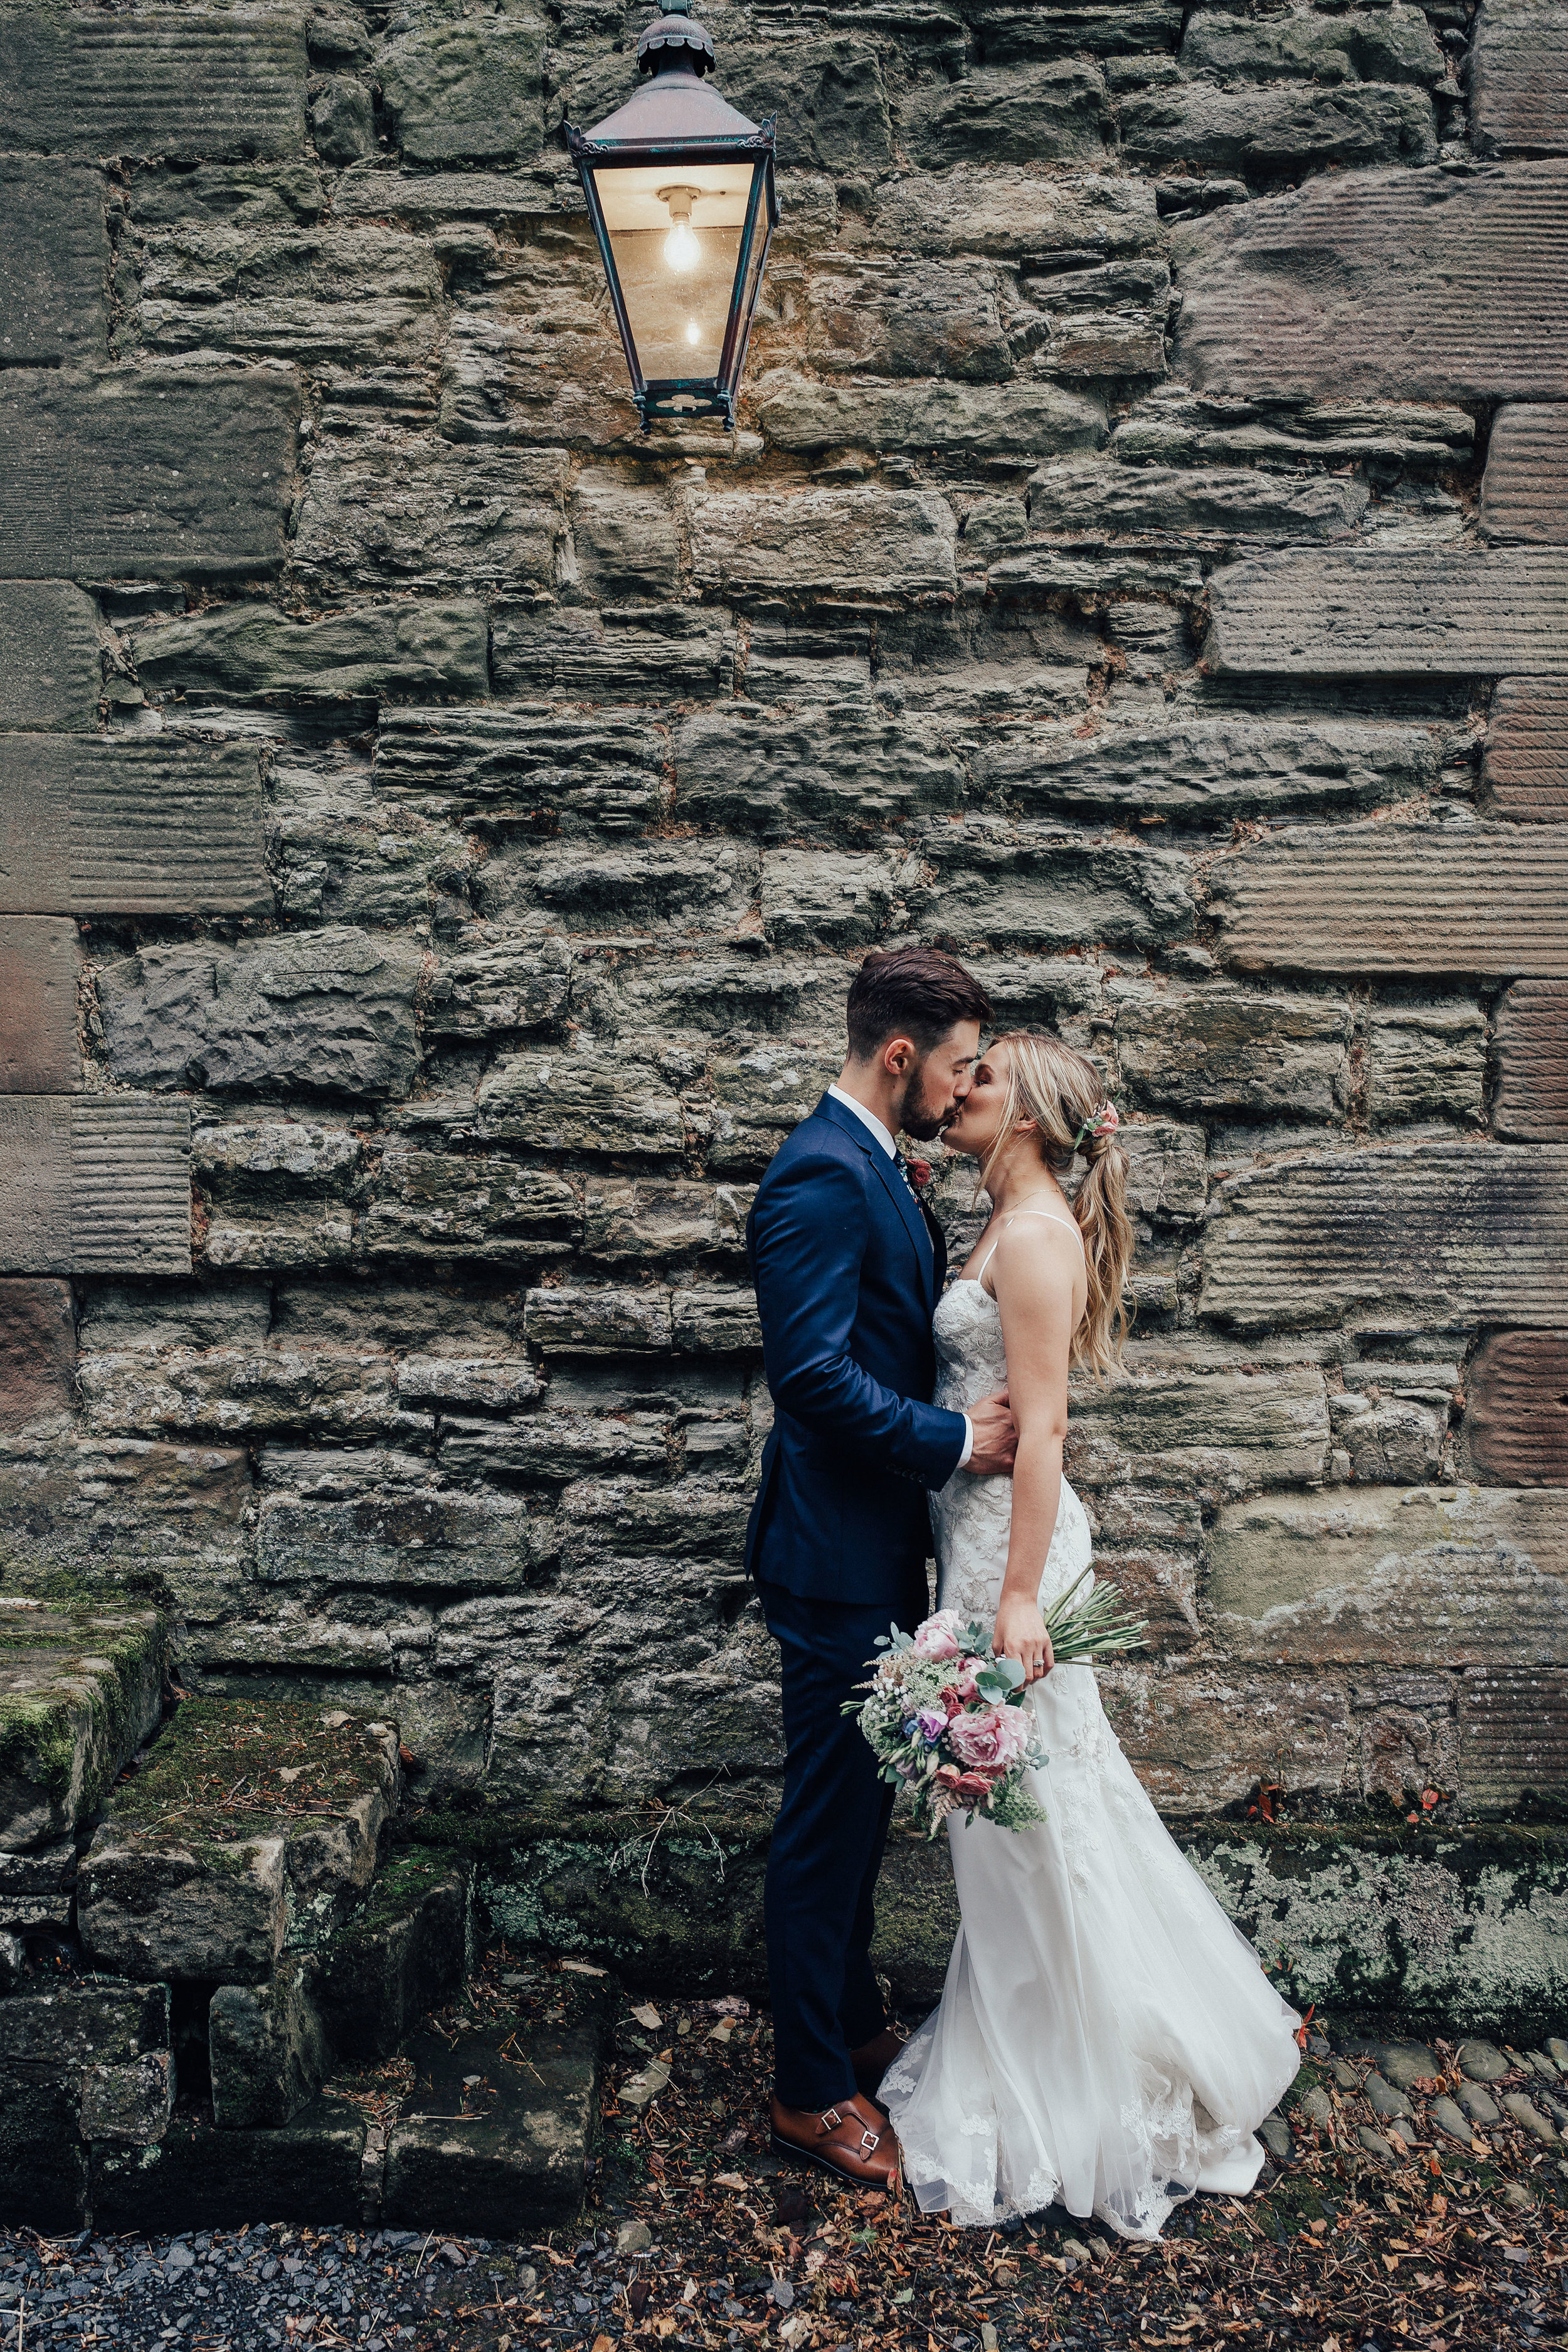 PJ_PHILLIPS_PHOTOGRAPHY_EDINBURGH_WEDDERBURN_BARNS_WEDDING_EDINBURGH_WEDDING_PHOTOGRAPHER_90.jpg